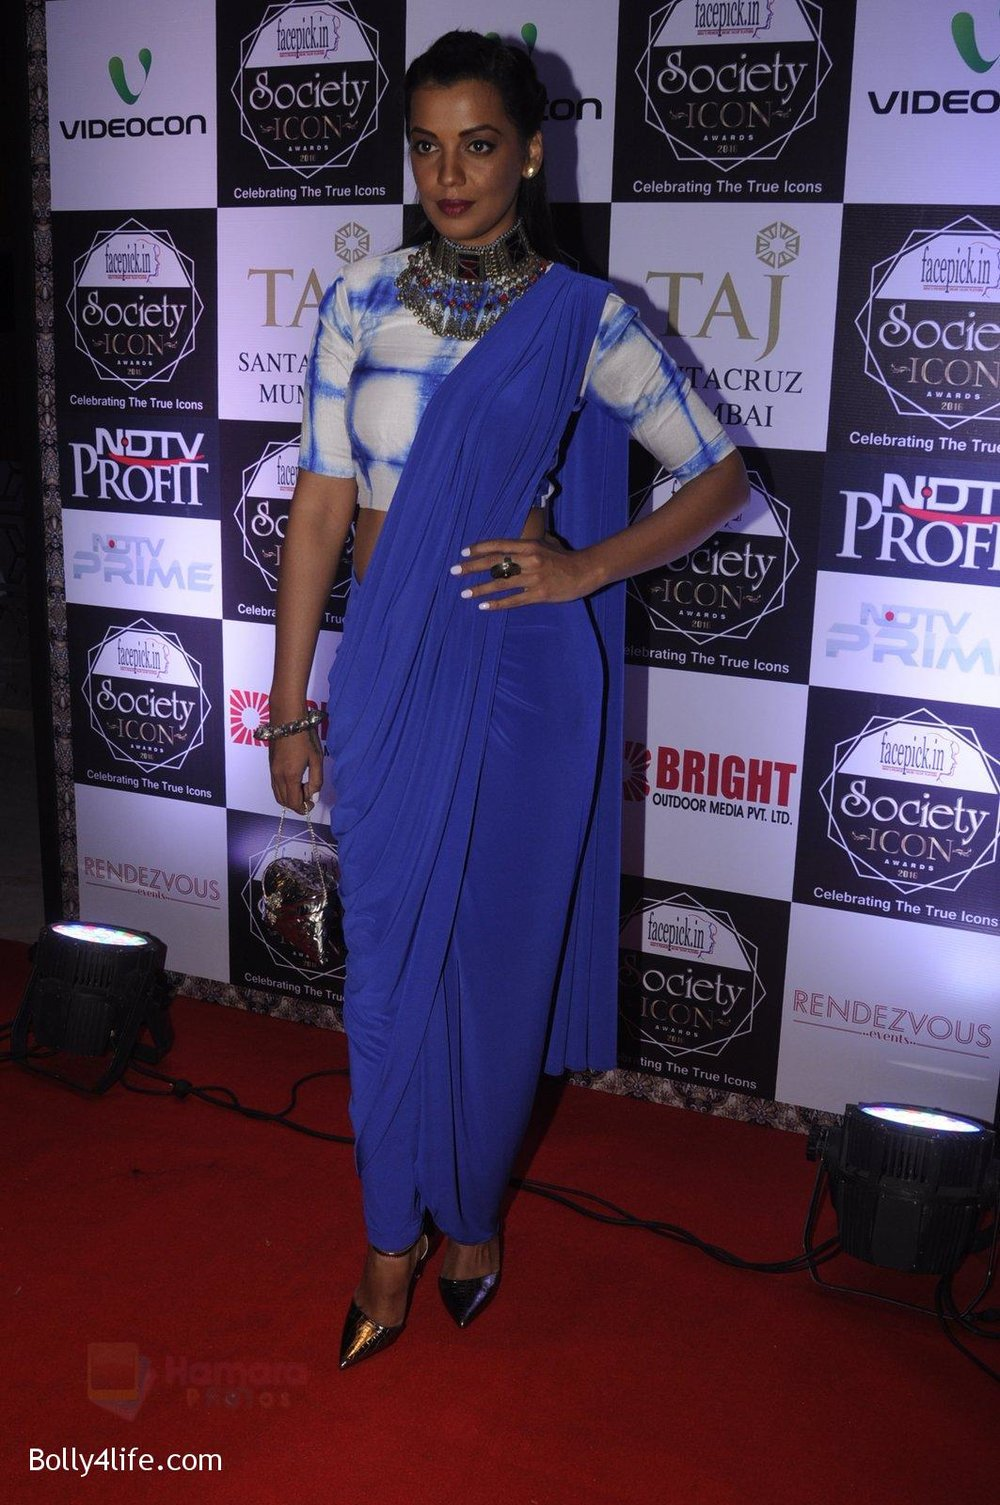 Mugdha-Godse-at-Society-Icon-Awards-on-2nd-Oct-2016-64.jpg